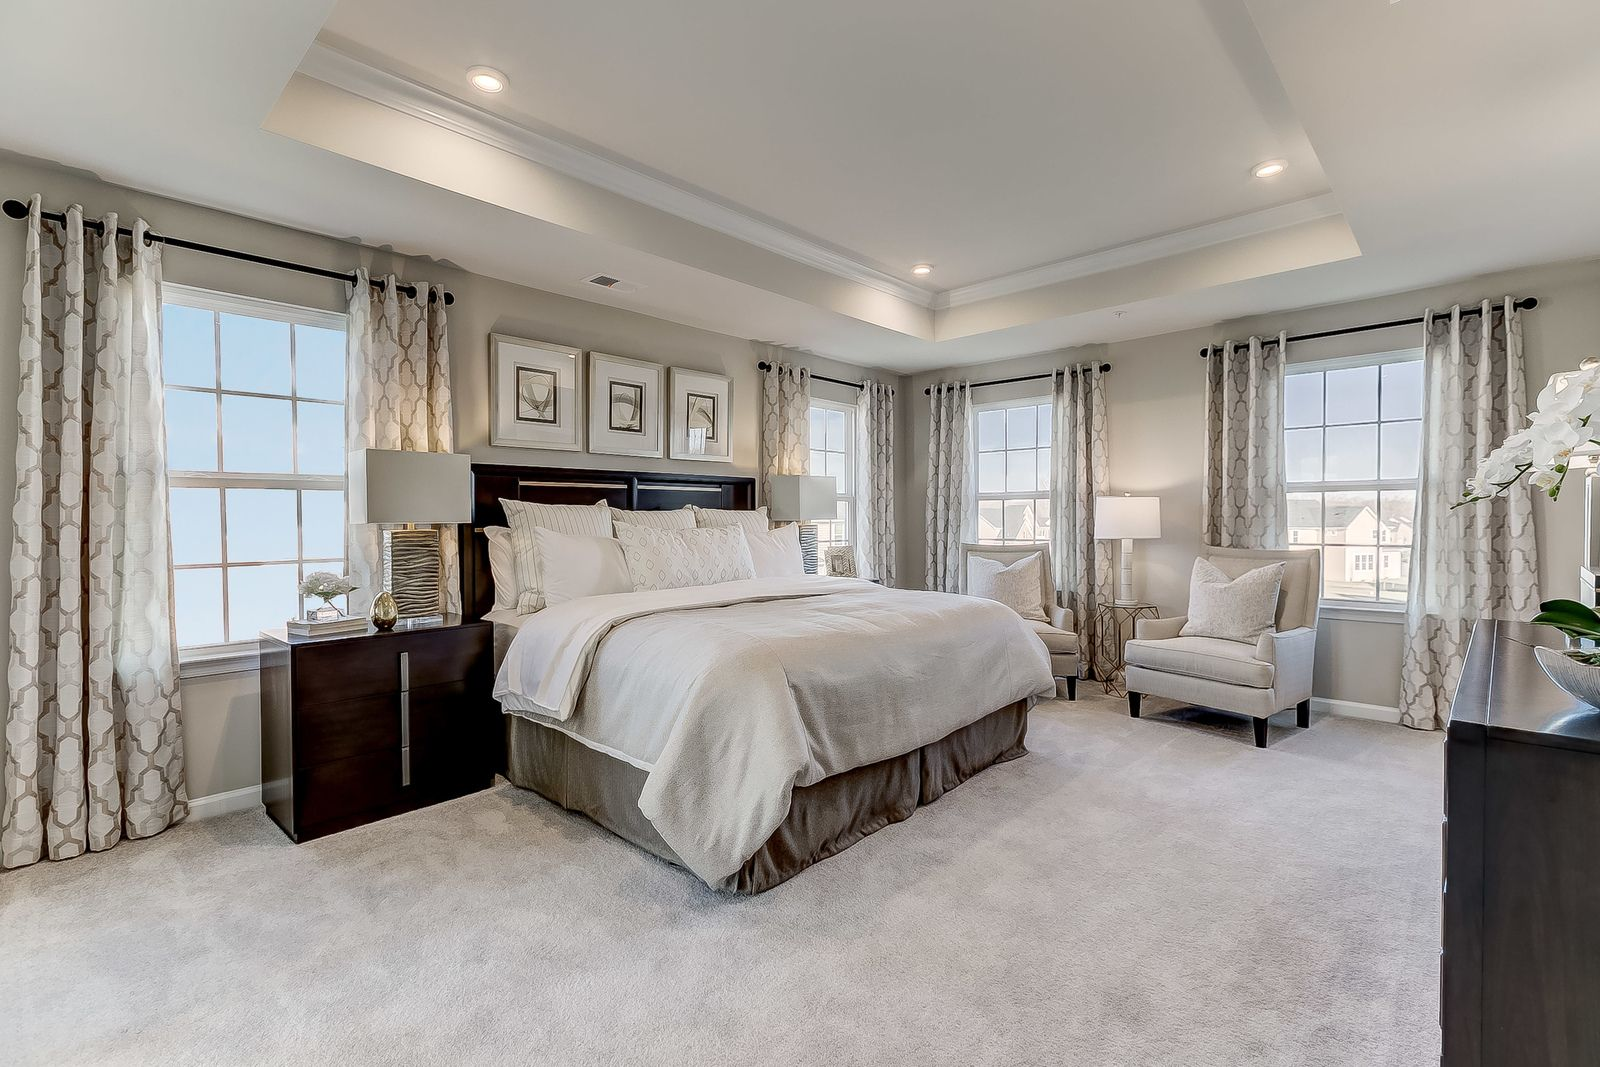 Bedroom featured in the Saint Lawrence By Ryan Homes in Philadelphia, PA